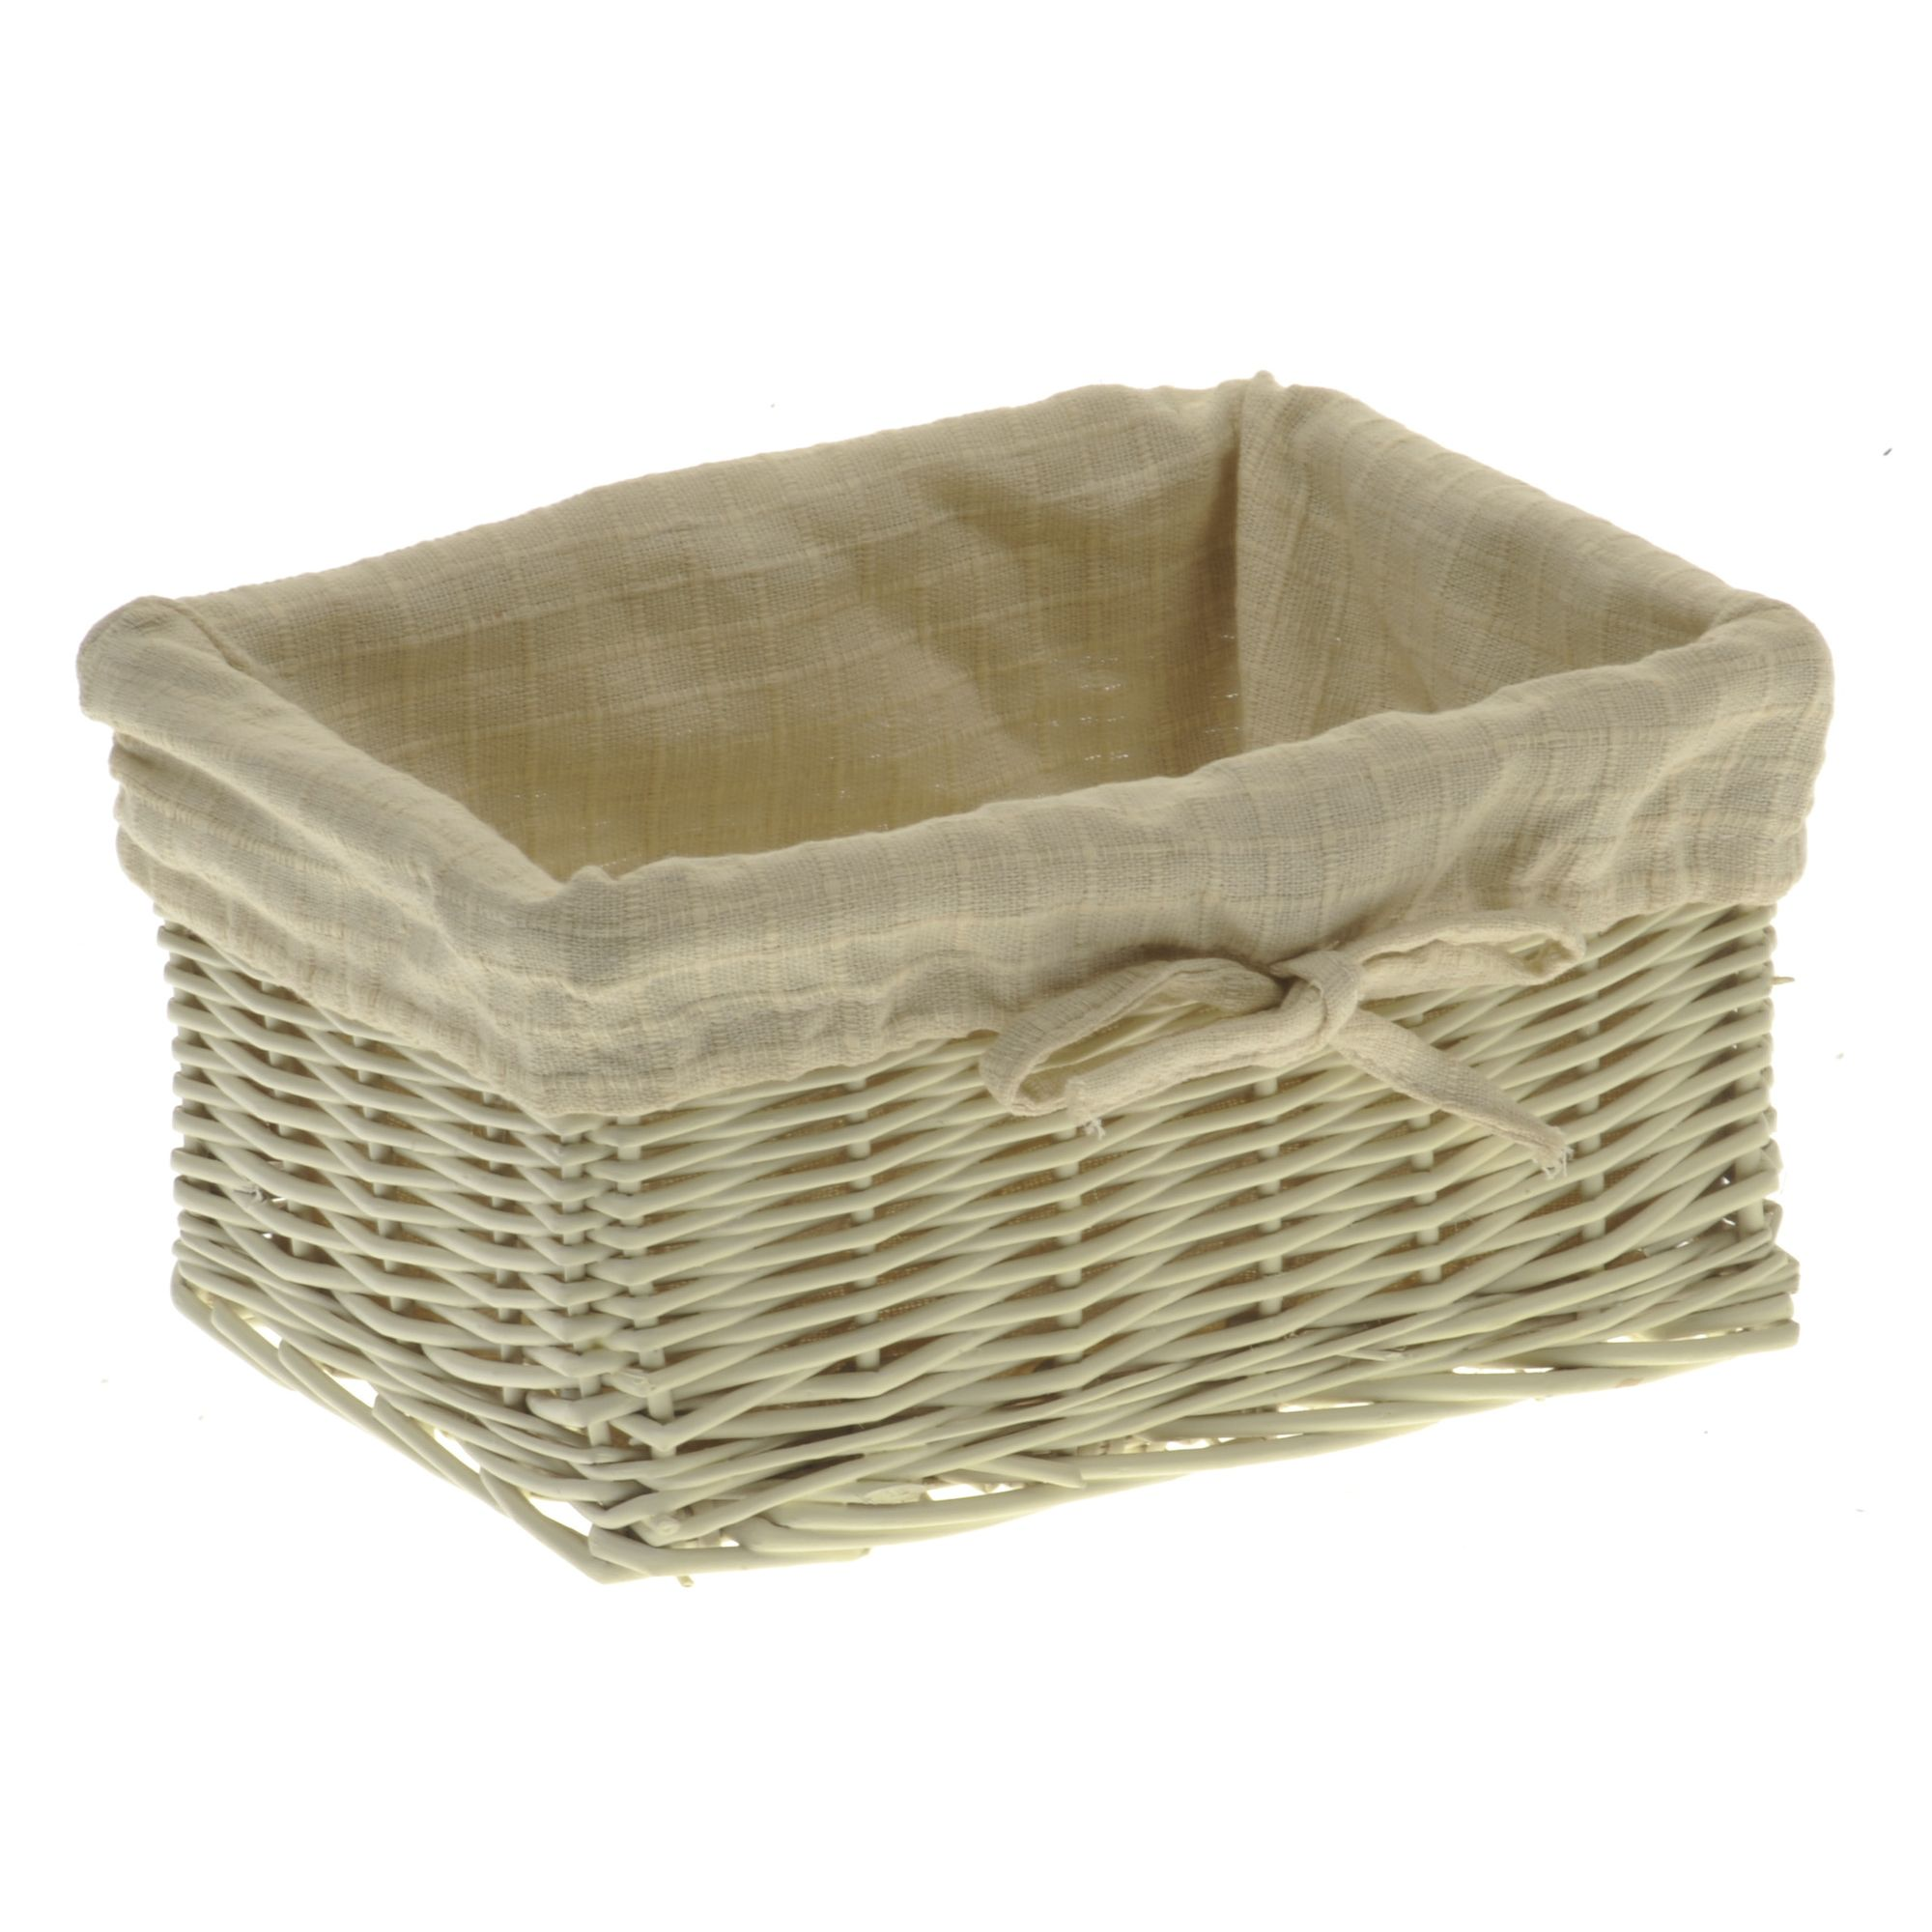 Wicker Valley Storage Basket with Cream Lining - Medium